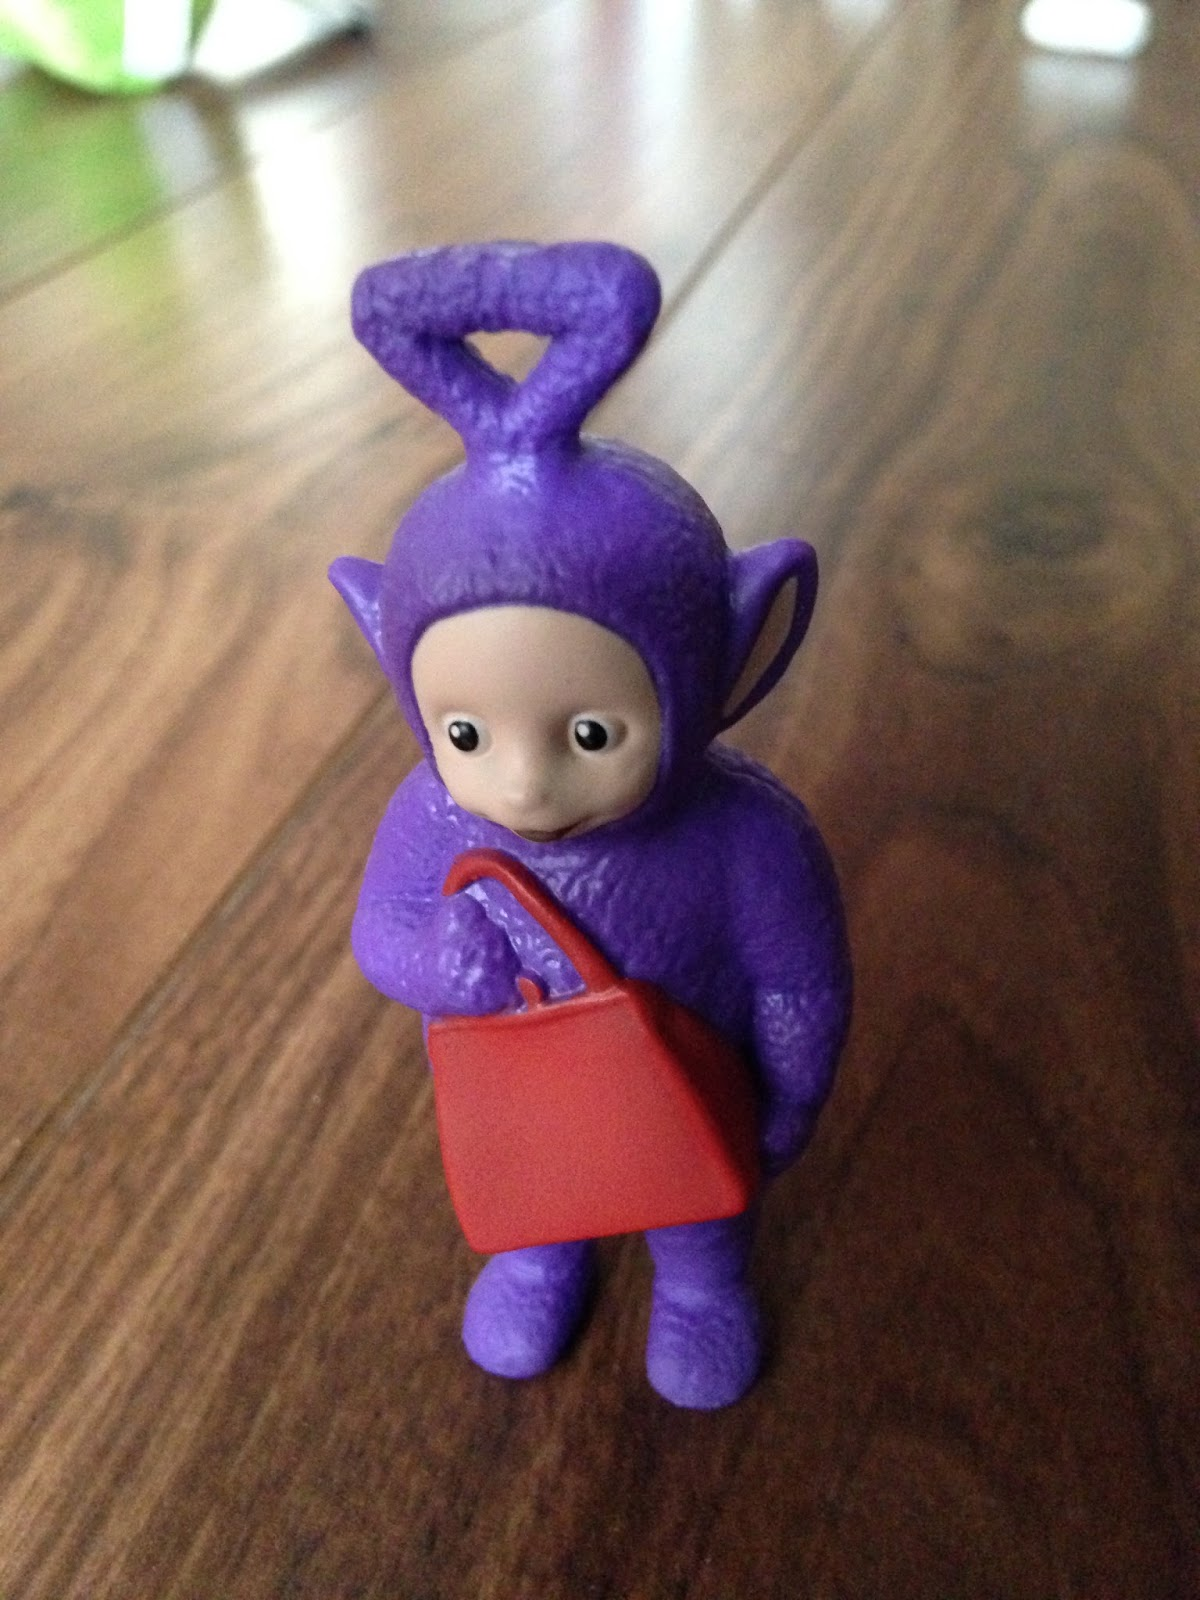 Item So In Our Case Tinky Winky Has The Red Handbag Po Her Scooter Etc There S Also A Noo This Range My Own Personal Favourite